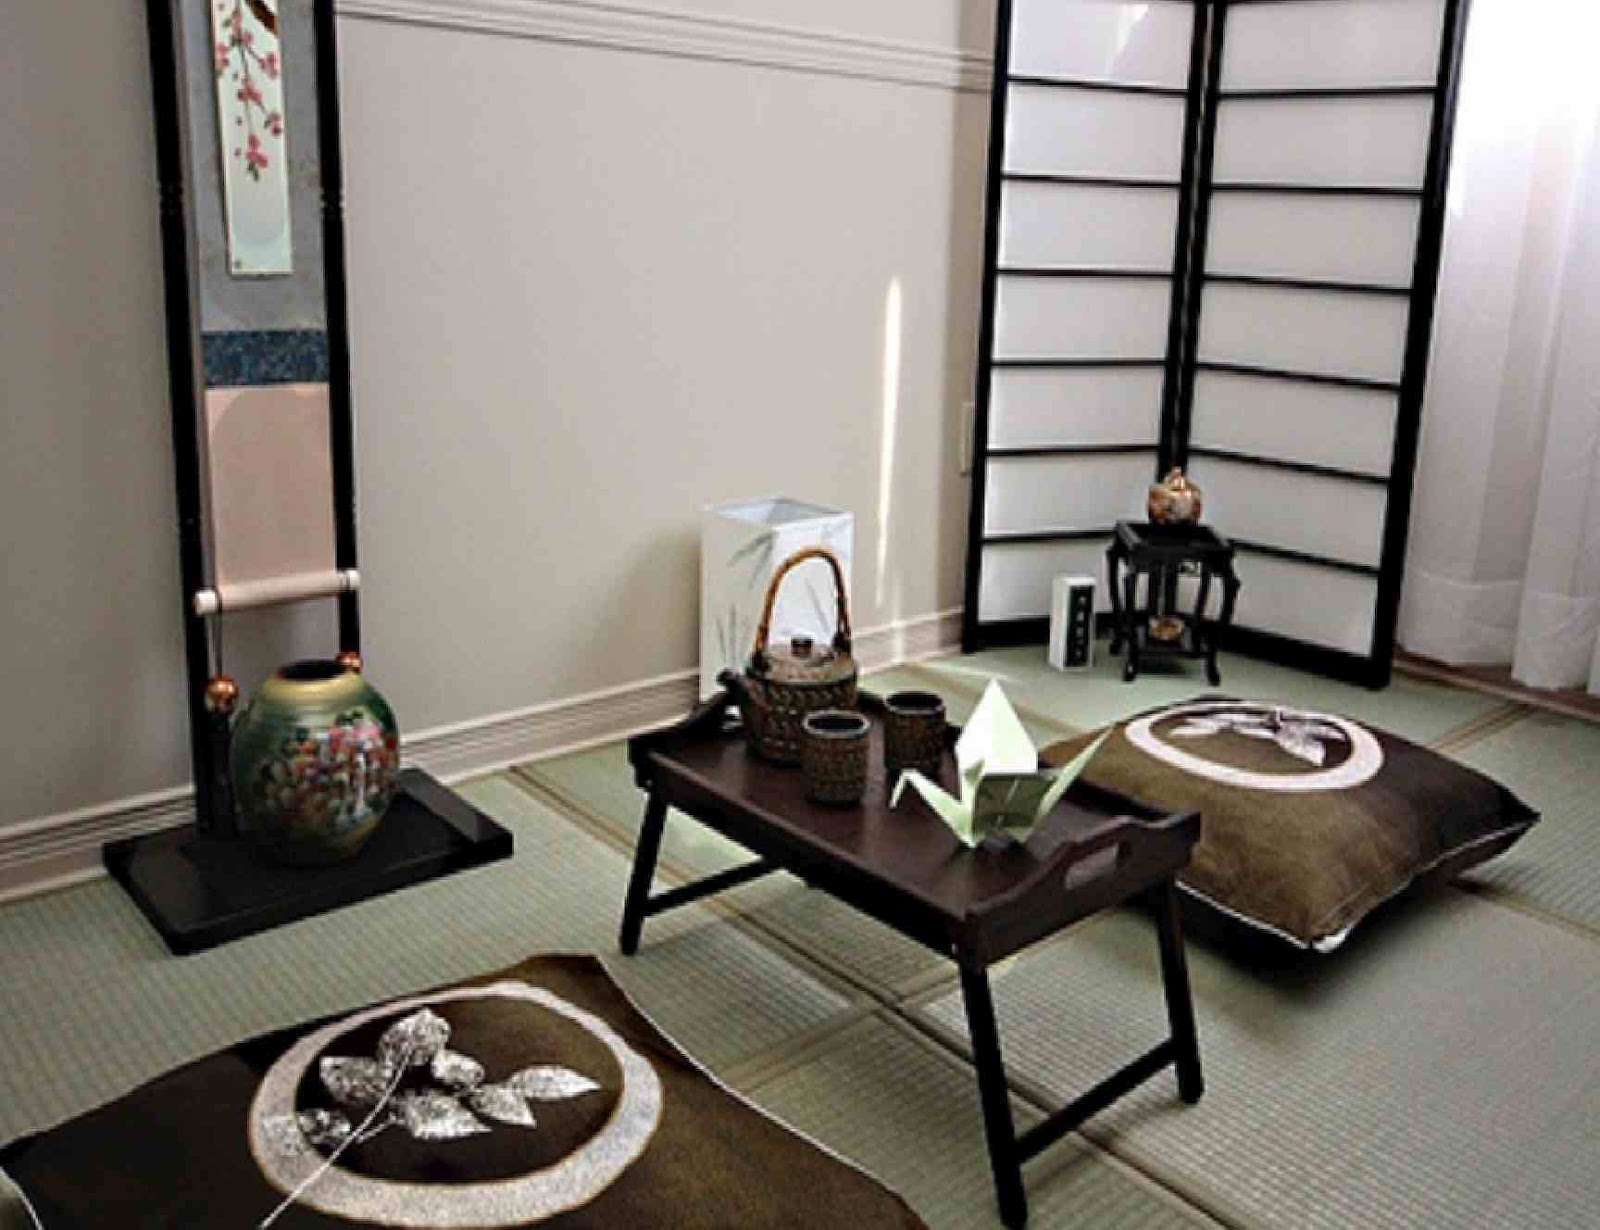 Japanese interior design interior home design for Modern japanese tea house design